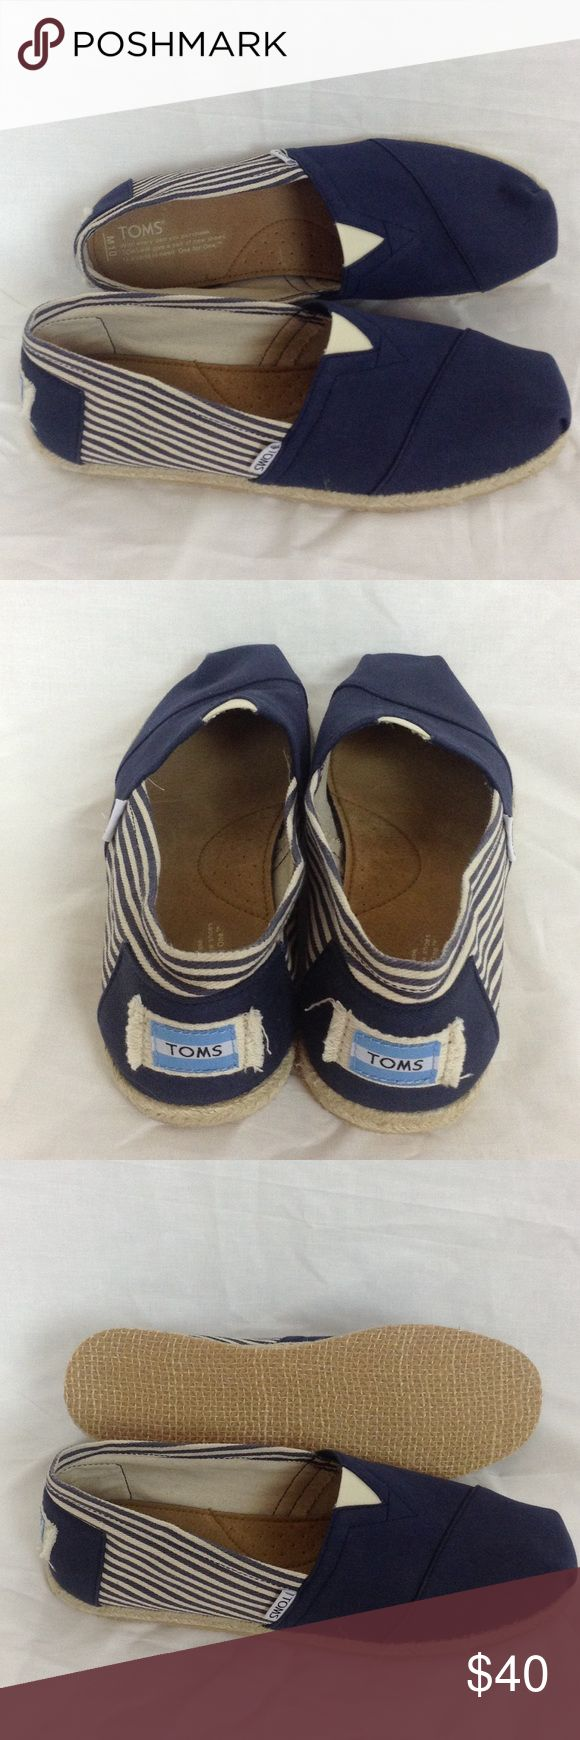 NWOT TOMS Canvas and Stripe Canvas Shoes NWT TOMS nautical look with navy canvas and blue and white striped sides. TOMS are made for comfort! Toms Shoes